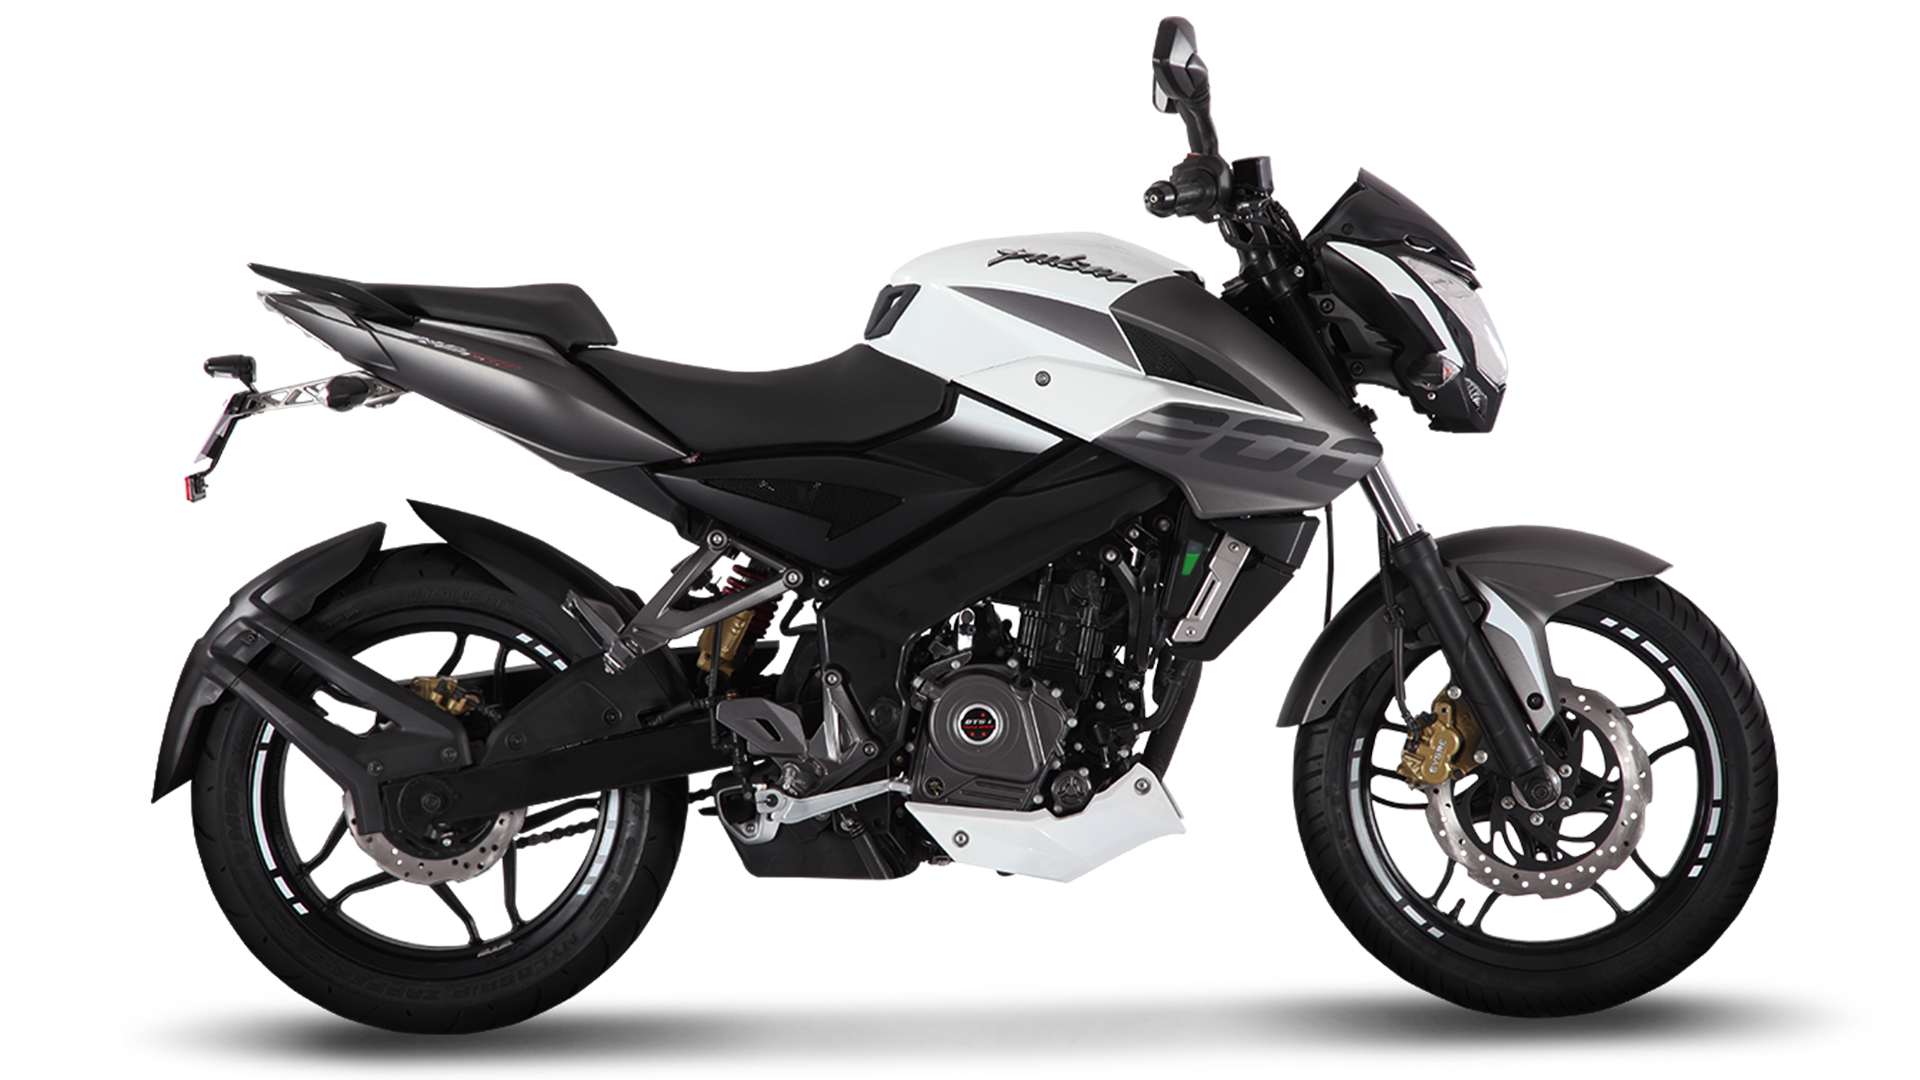 Bajaj Pulsar 200 Ns 2013 Std Price Mileage Reviews